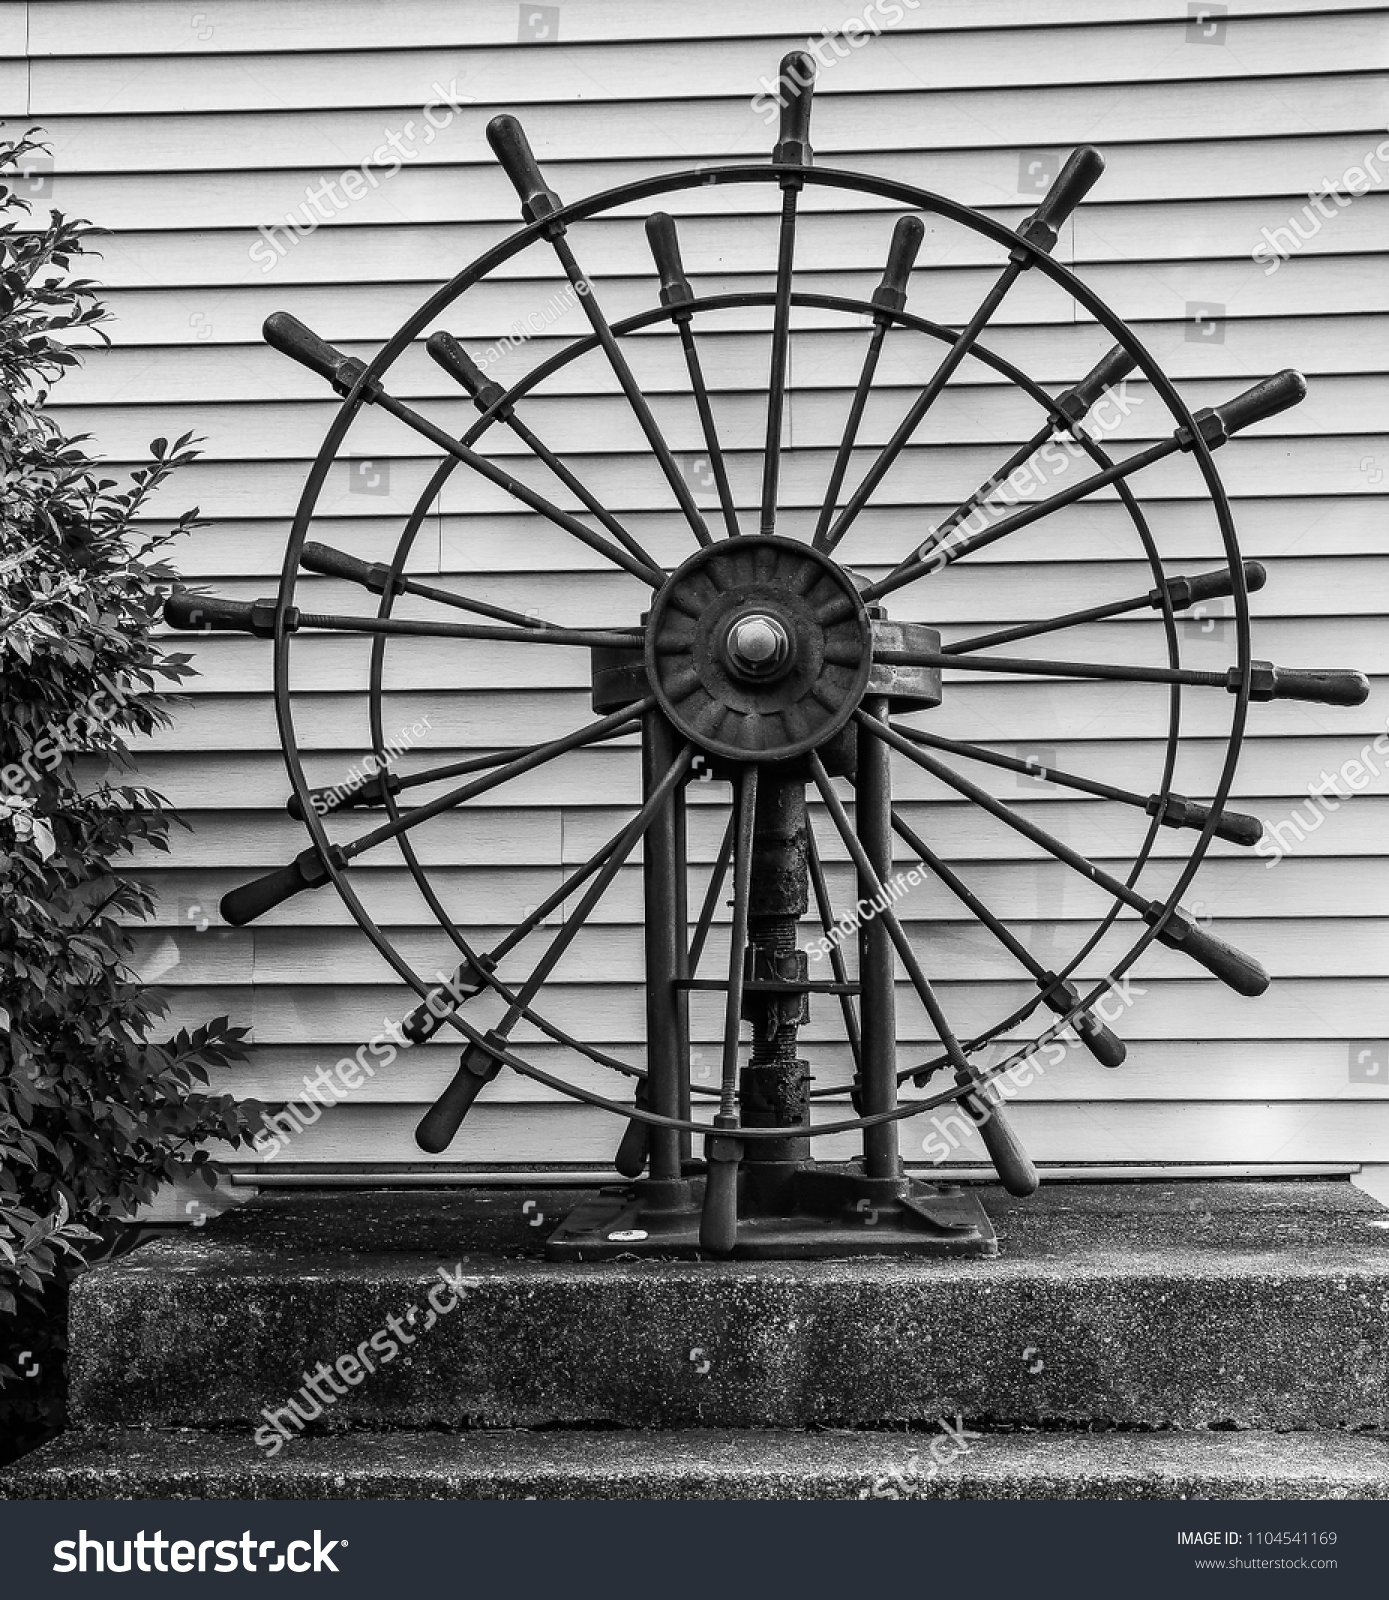 Circles in circles and lines a black and white artsy view of a ships wheel